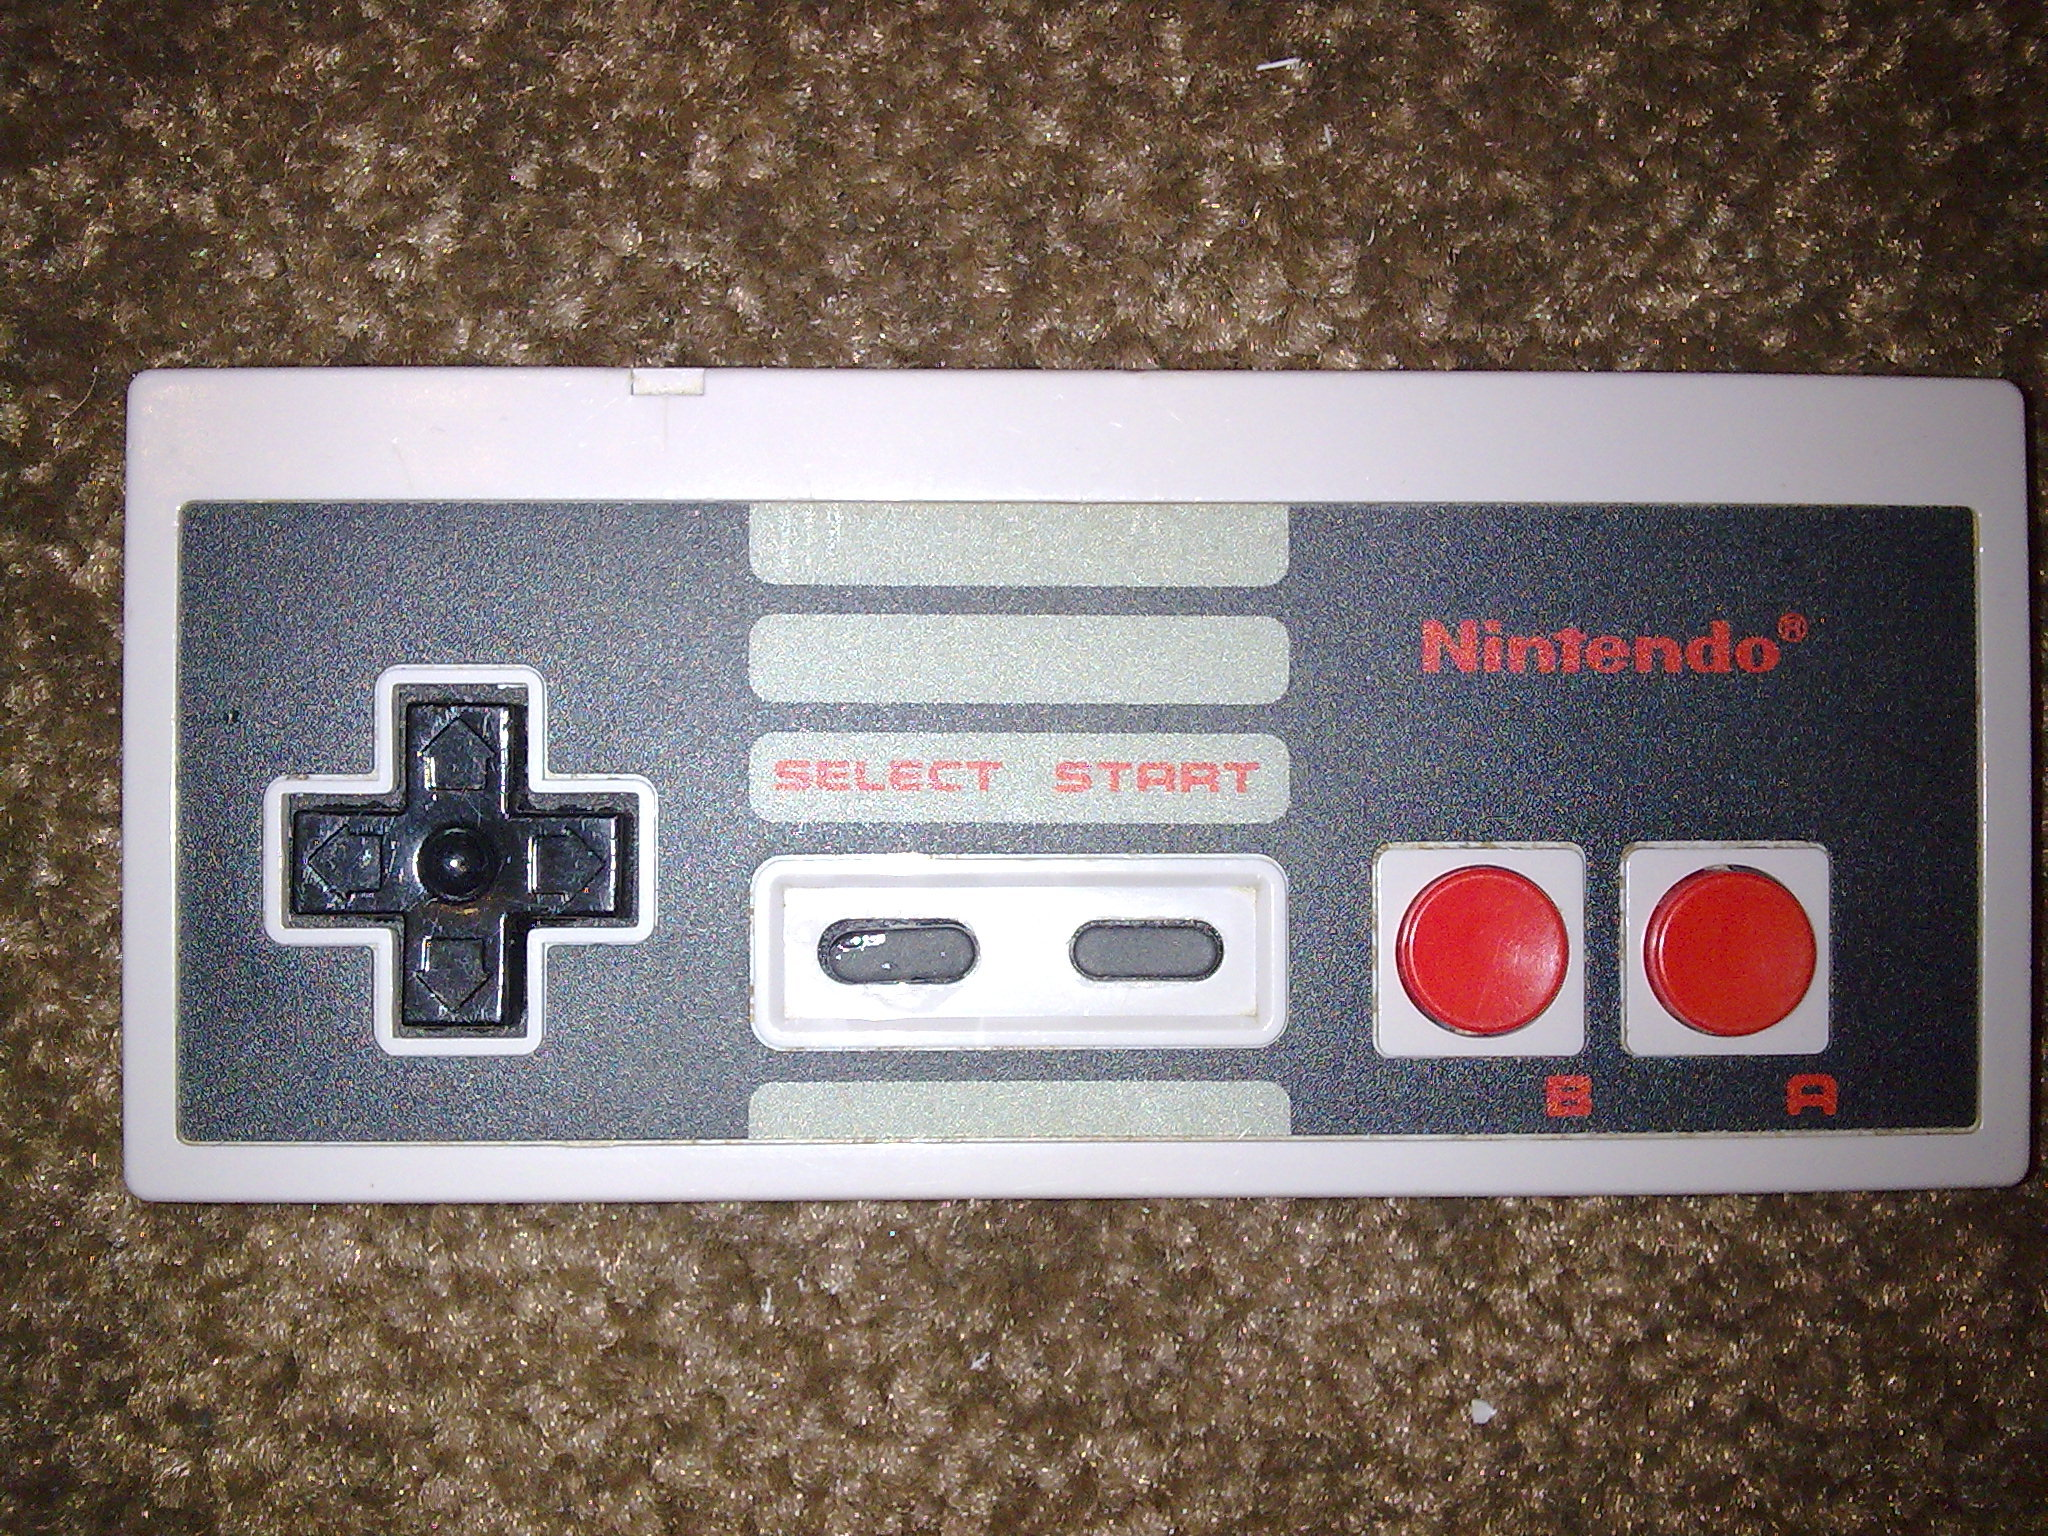 2048x1536 How To Build A Nes Controller Storage Device (Not Hub)